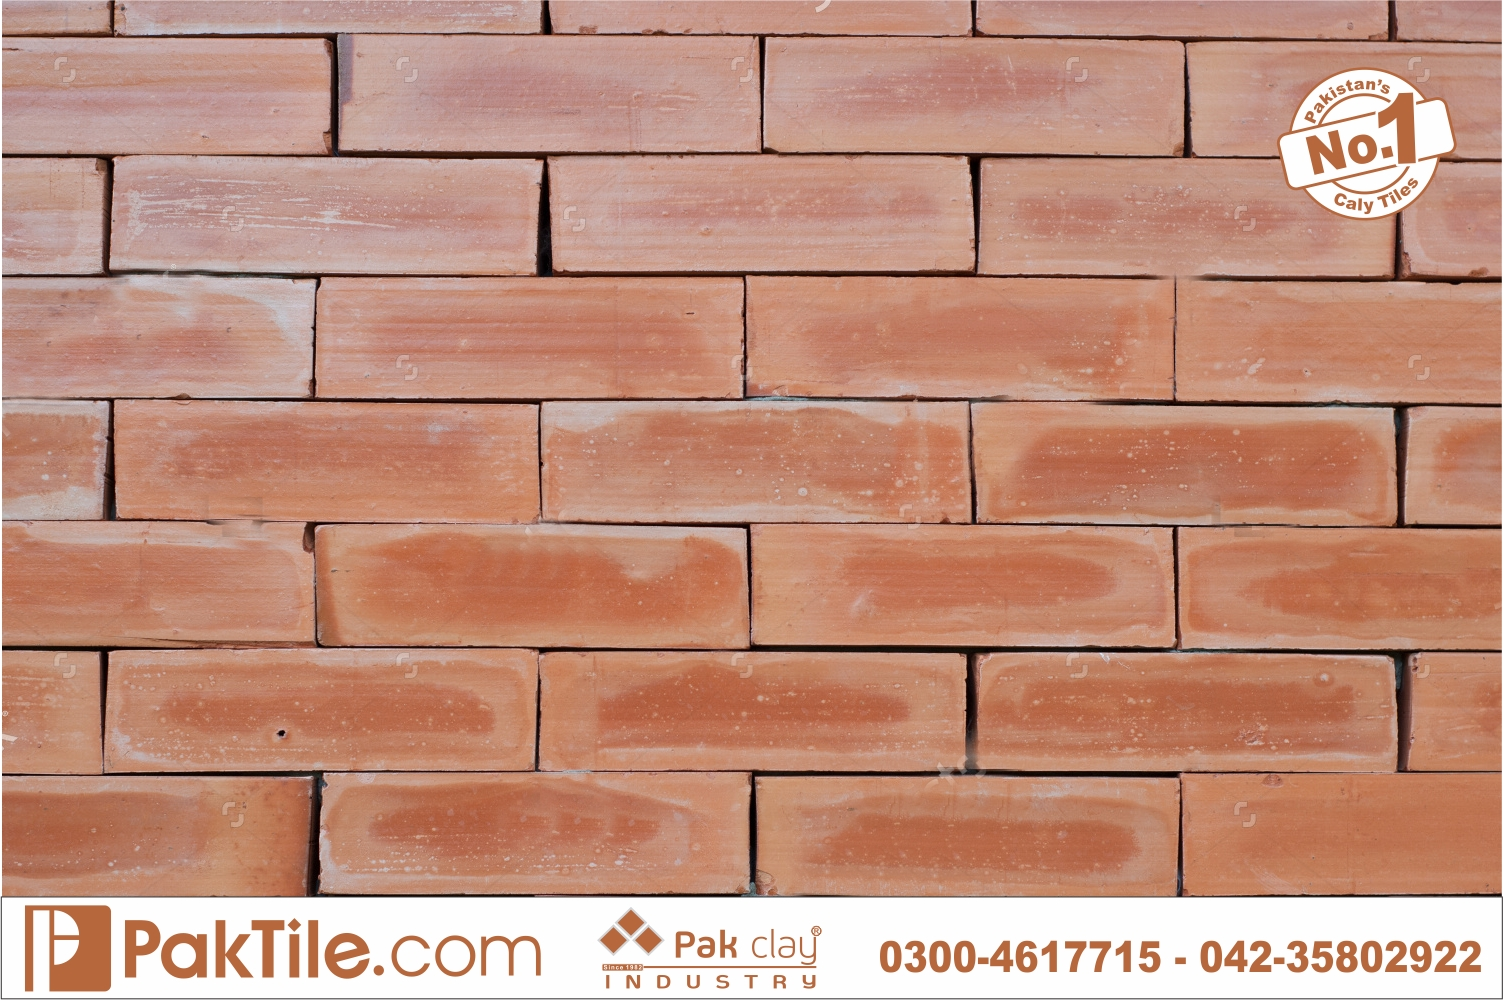 8 Pak clay gutka tile texture red bricks wall tiles in lahore pakistan